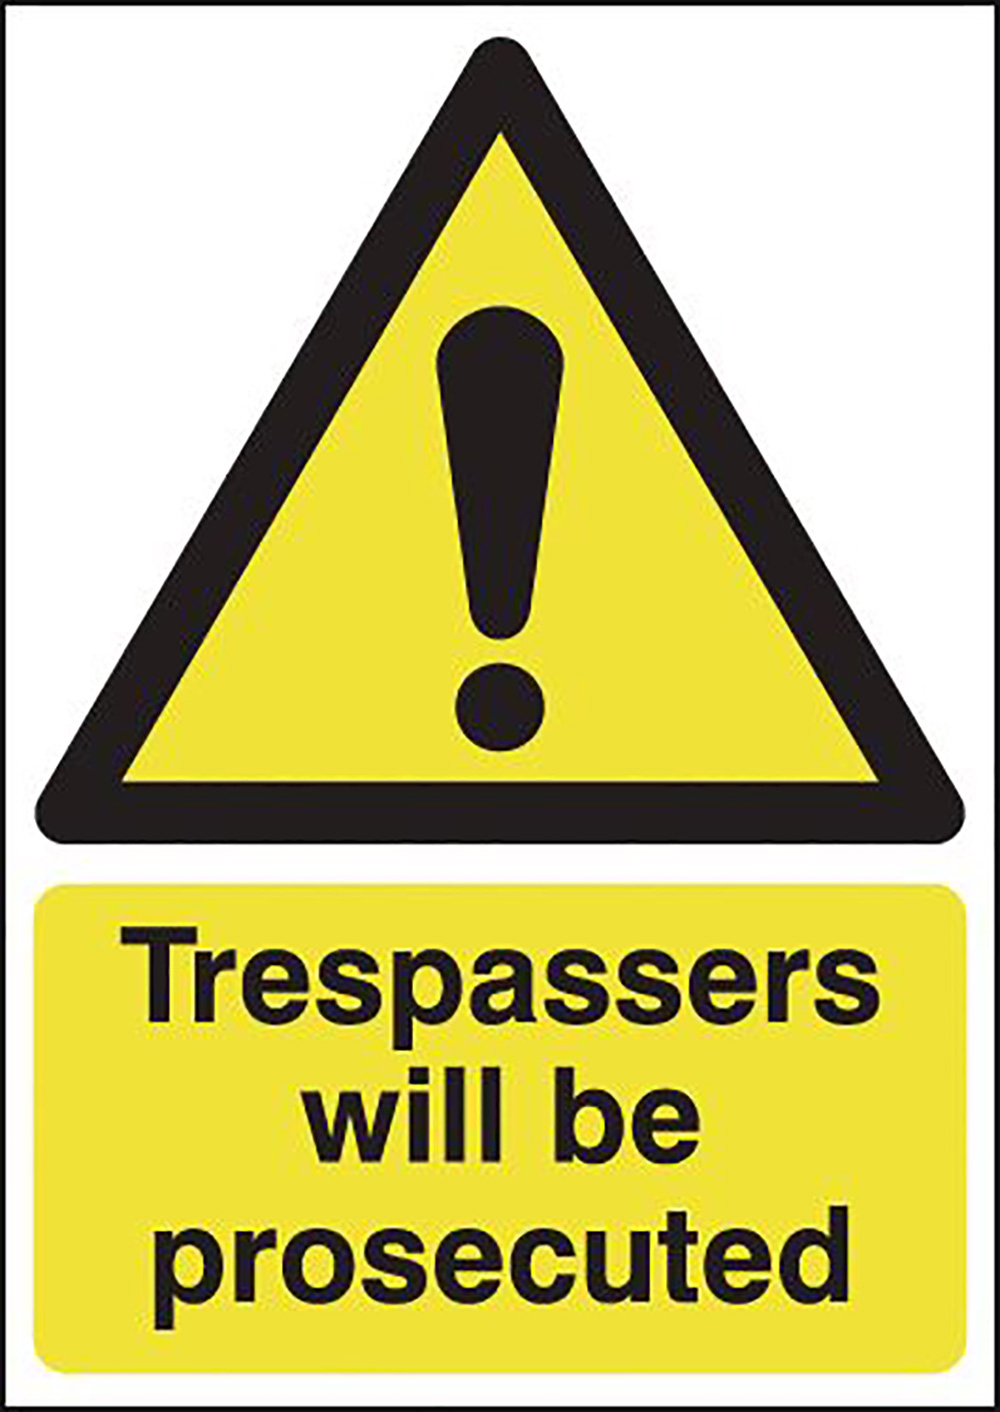 Trespassers Will Be Prosecuted 297x210mm Self Adhesive Vinyl Safety Sign